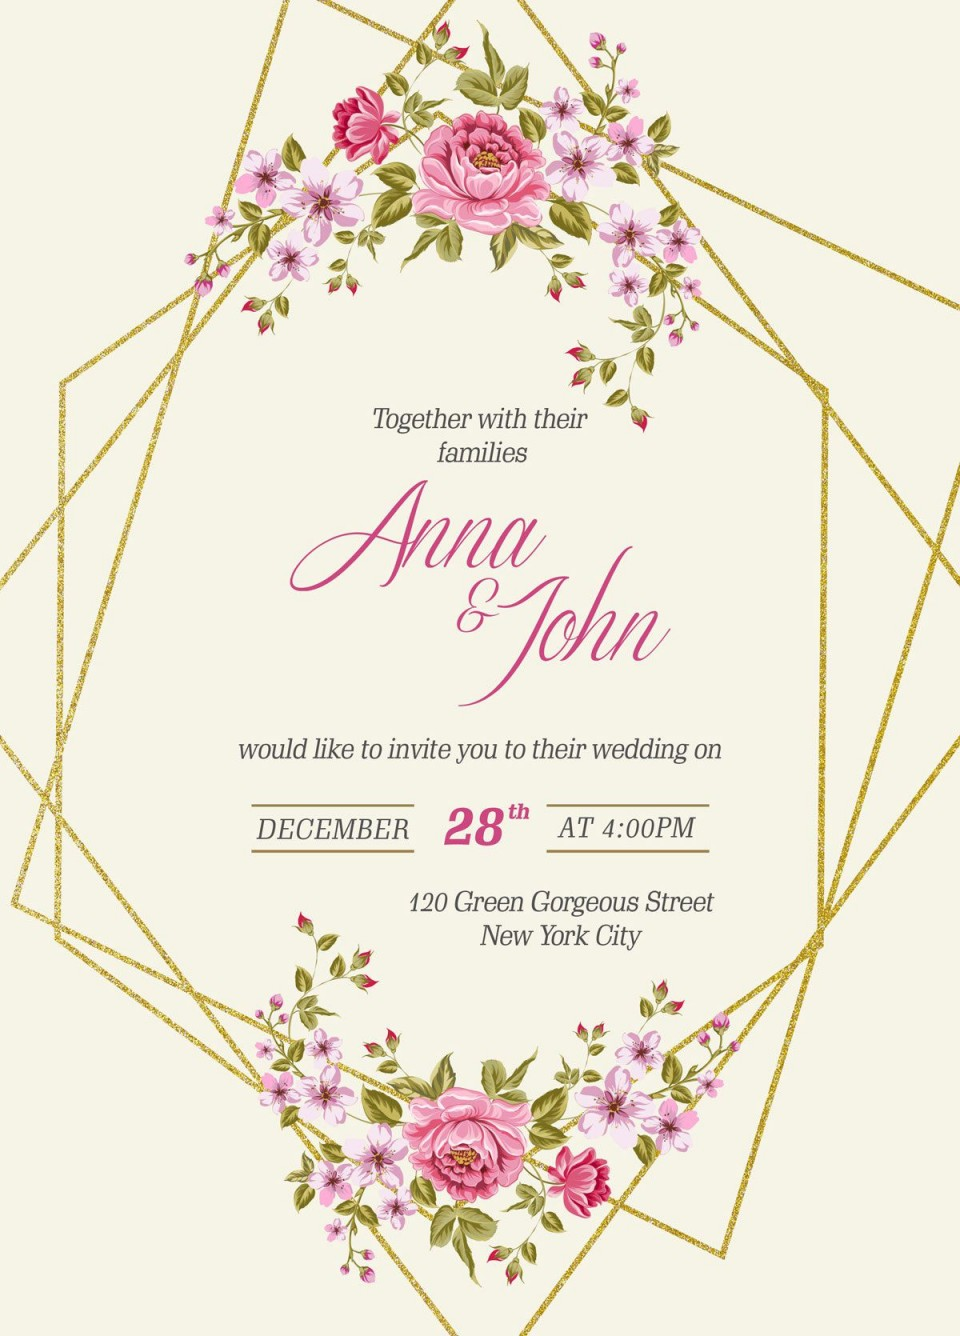 007 Outstanding Free Download Invitation Card Template Psd Image  Indian Wedding960